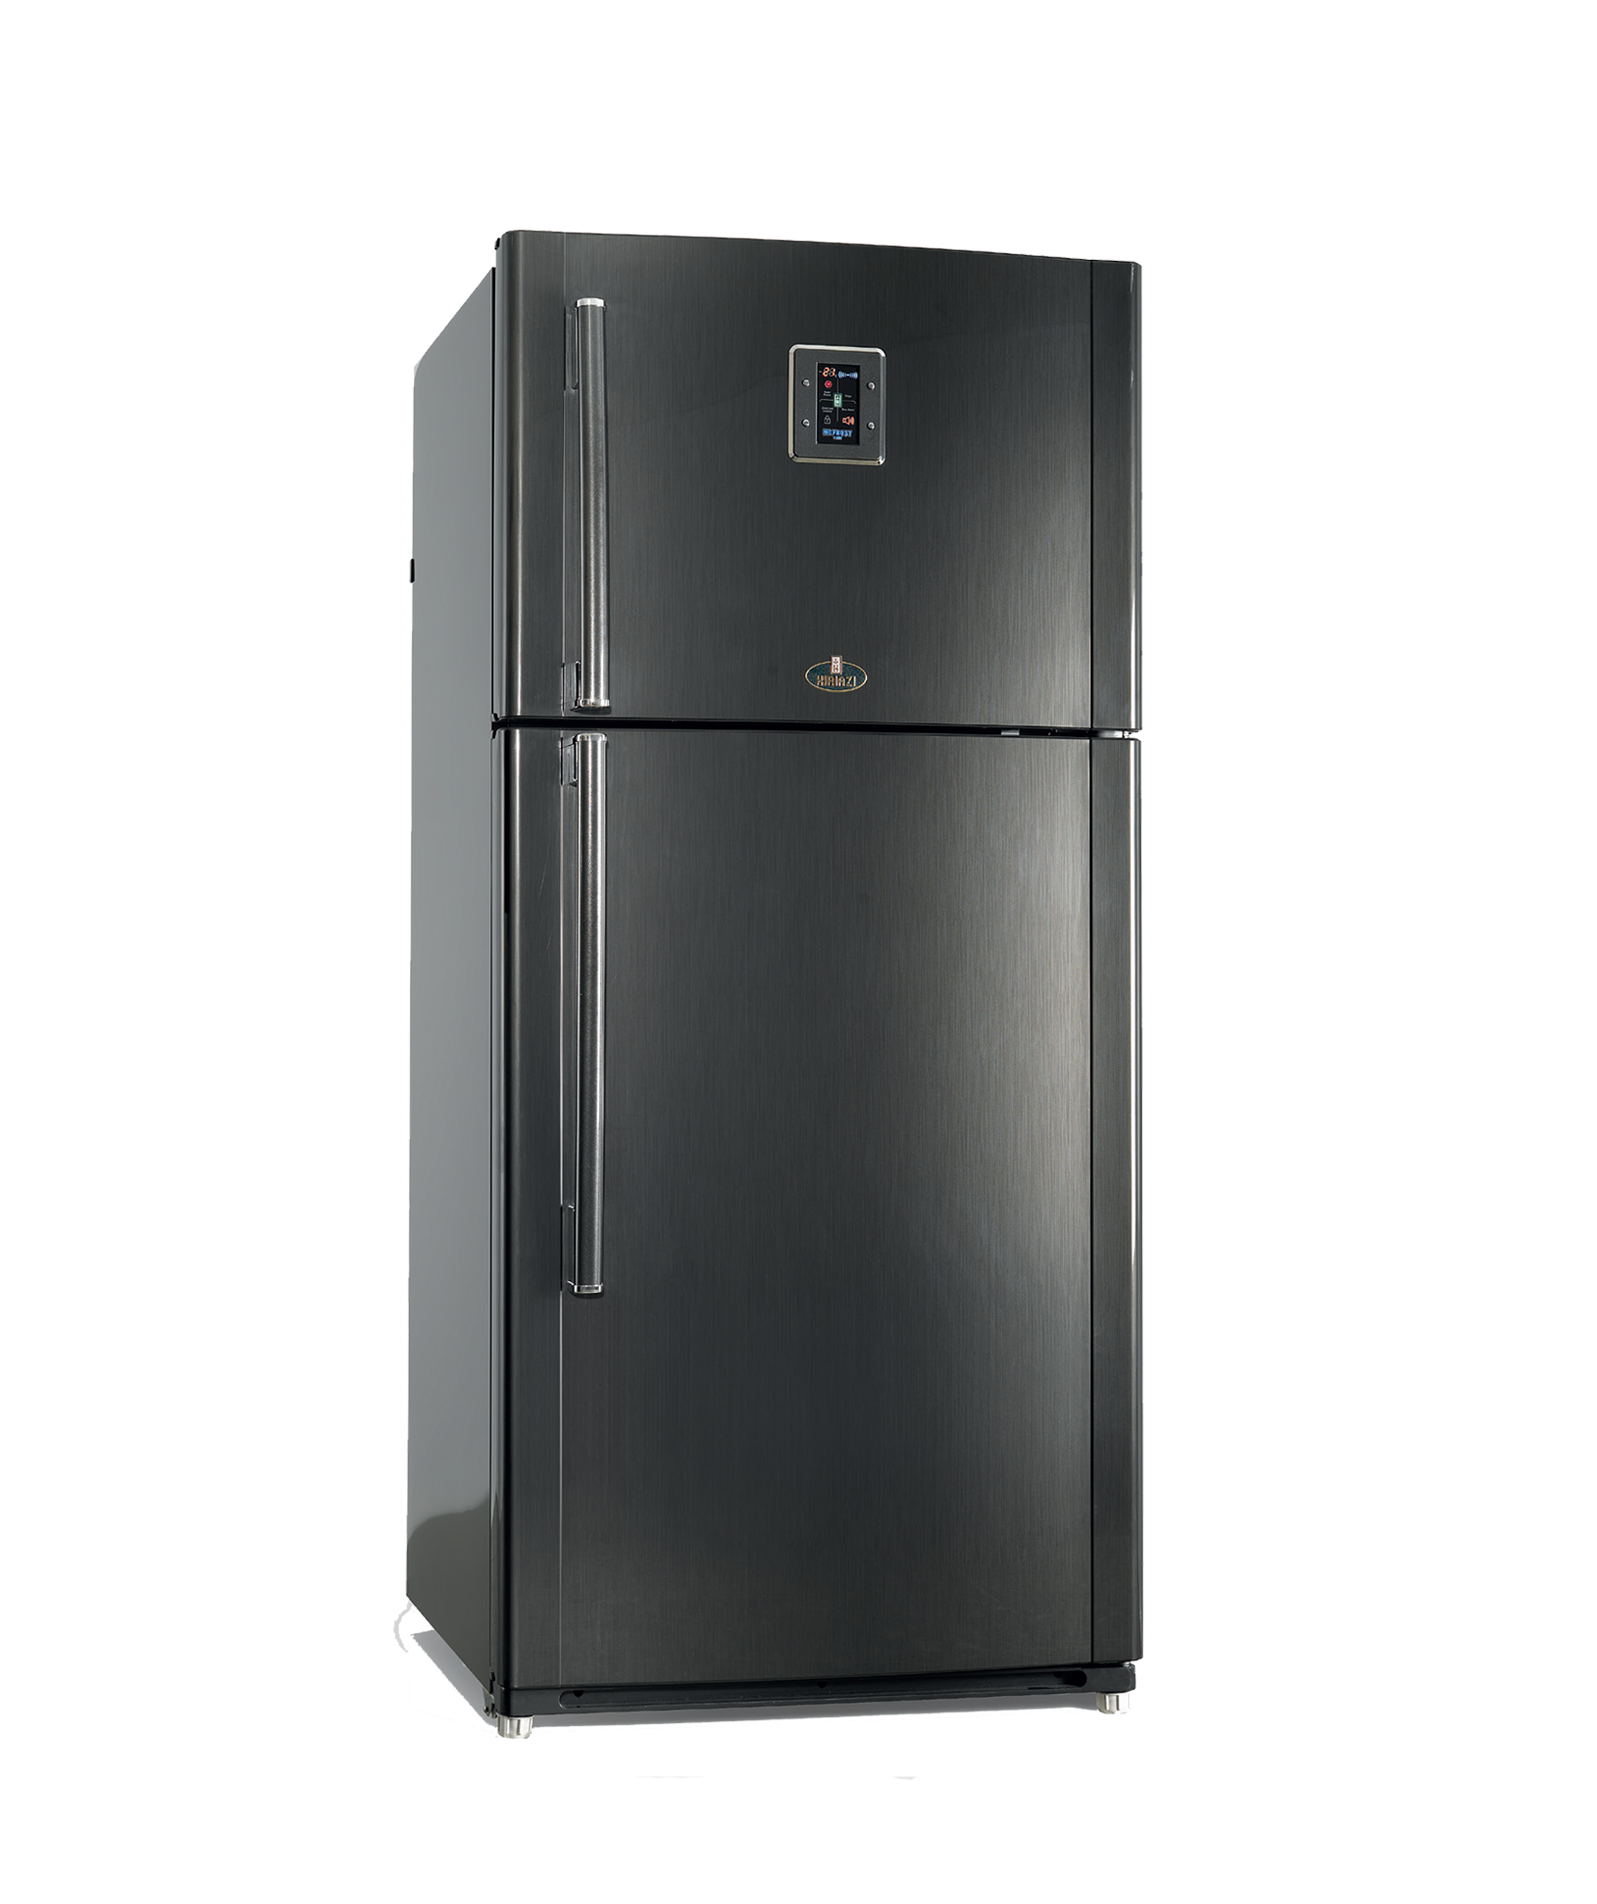 Fridge 690 liter Superfreeze refrigerator